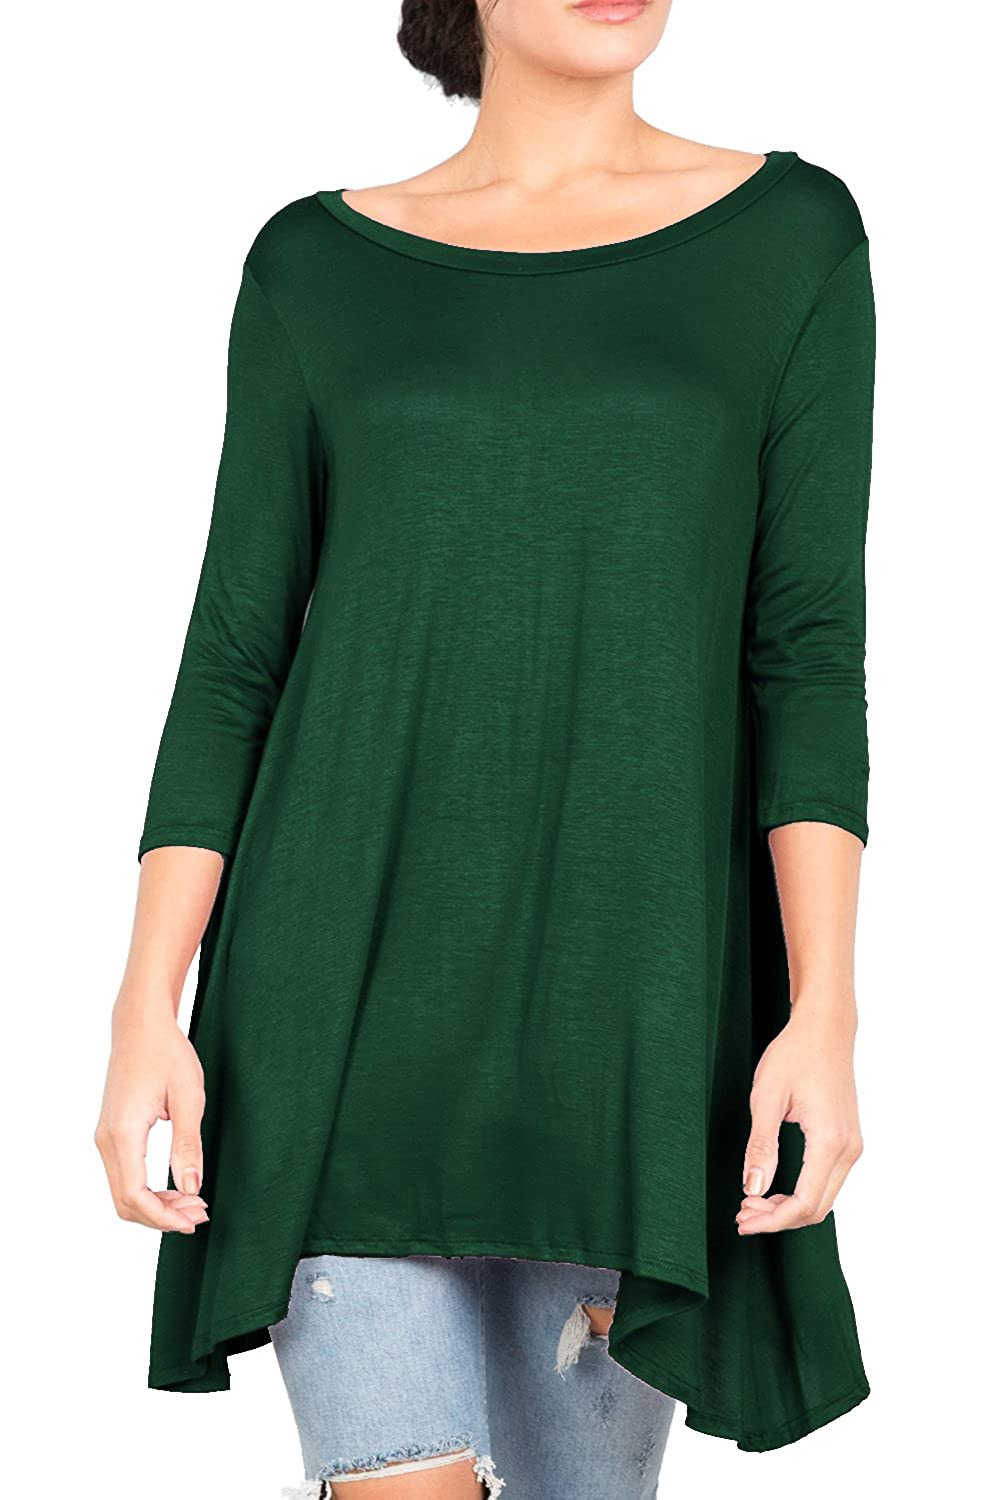 Love In Women's 3/4 Sleeve Round Neck Relaxed Drape Tunic T Shirt Top S~3XL I-T2411